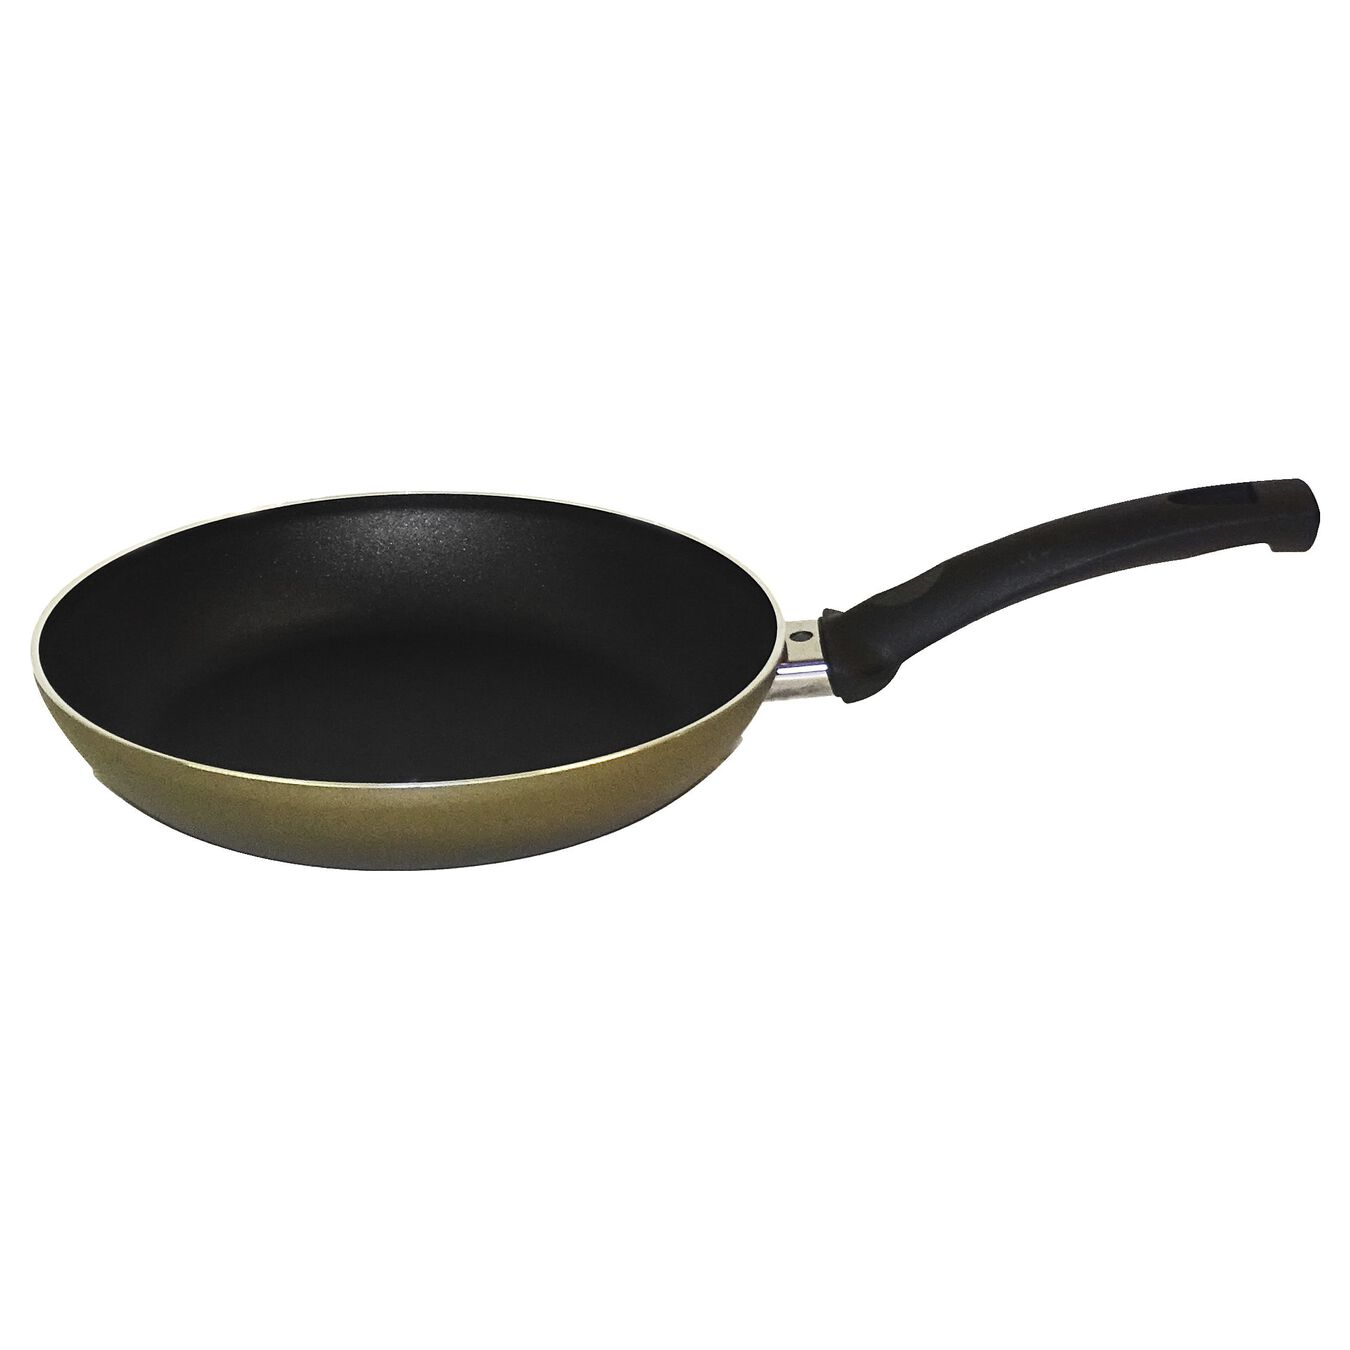 24 cm / 9.5 inch Aluminum Frying pan,,large 1